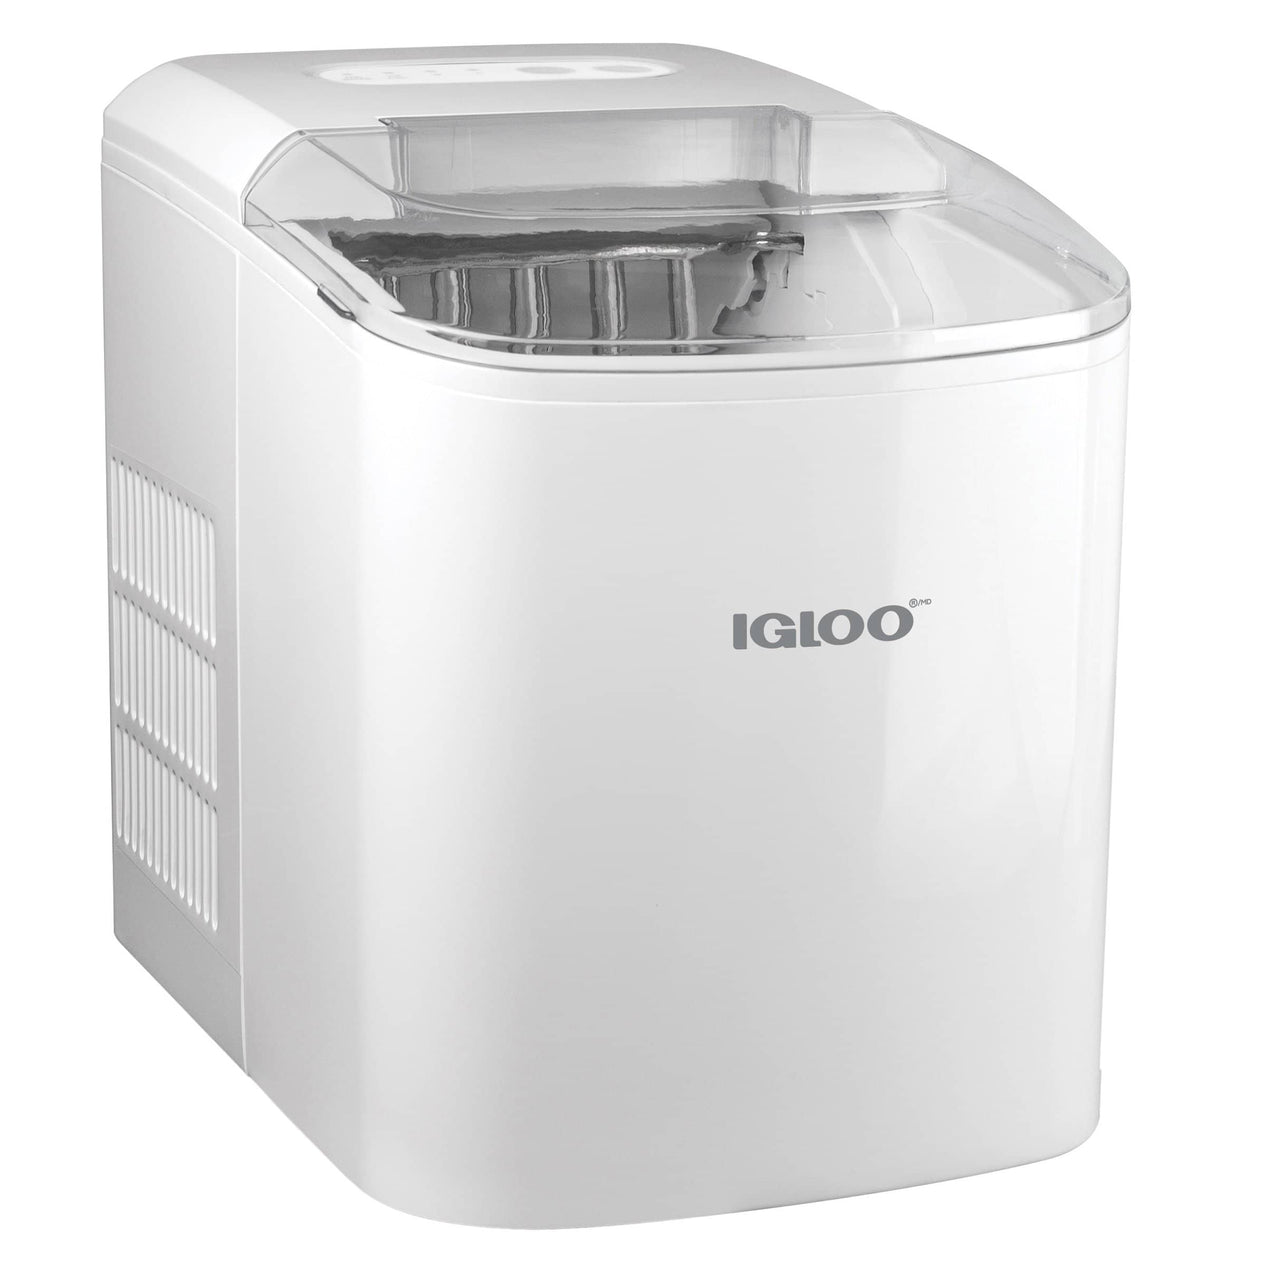 IGLOO® 26-Pound Automatic Portable Countertop Ice Maker Machine - White